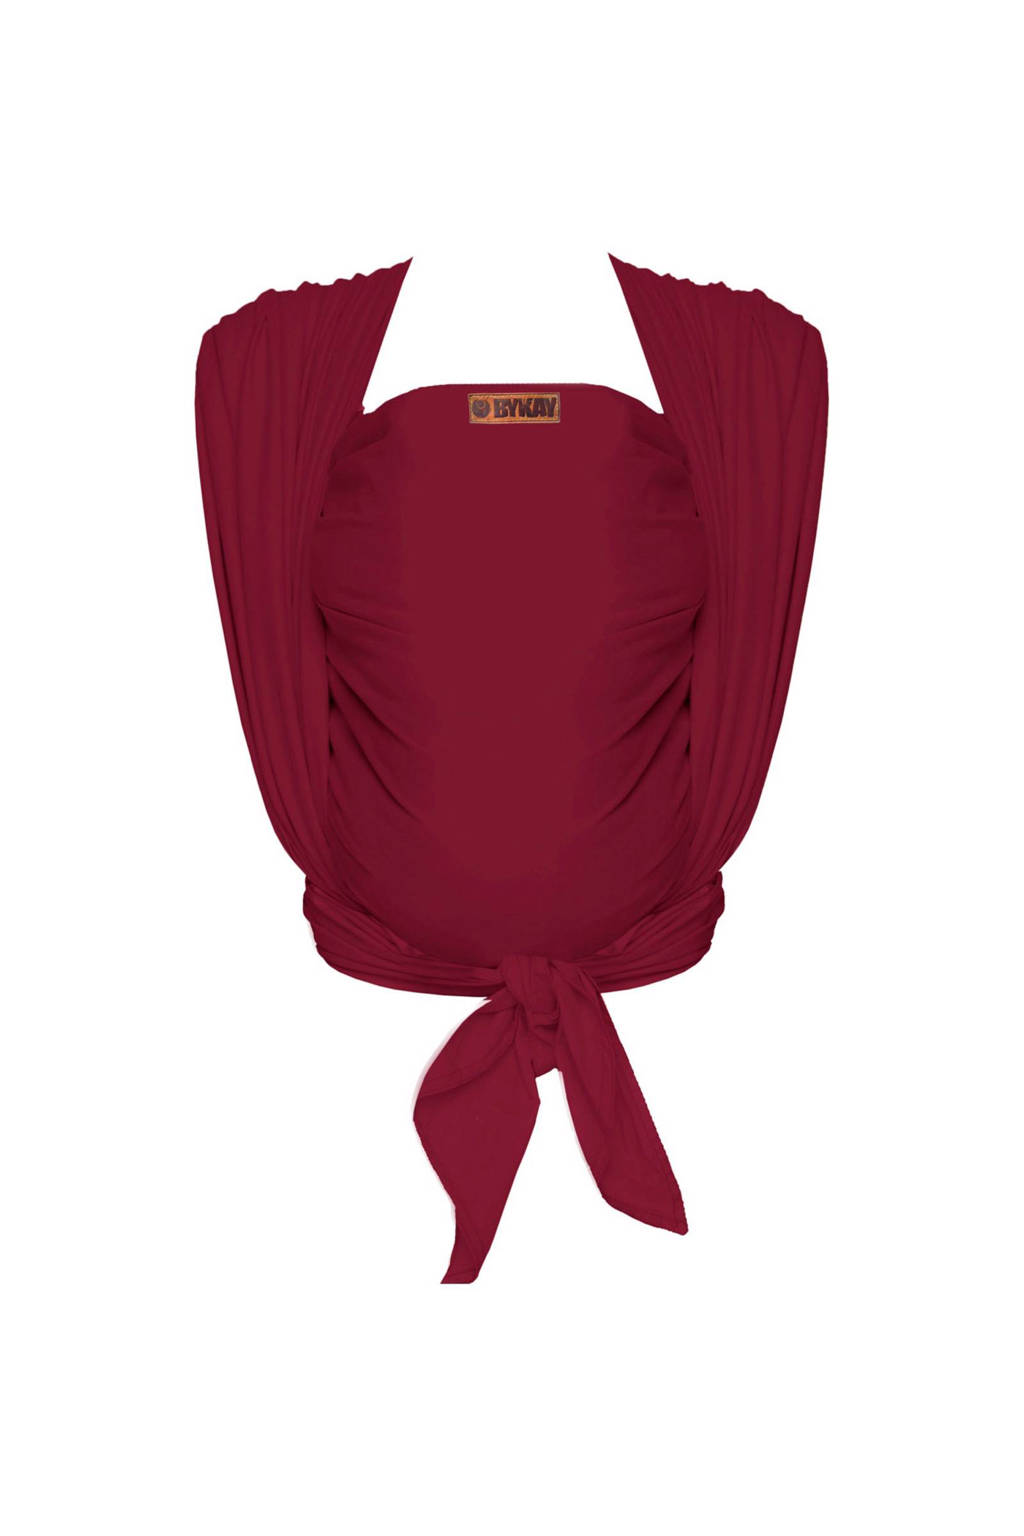 ByKay draagdoek Woven Wrap Deluxe 60126 rood, Berry Red